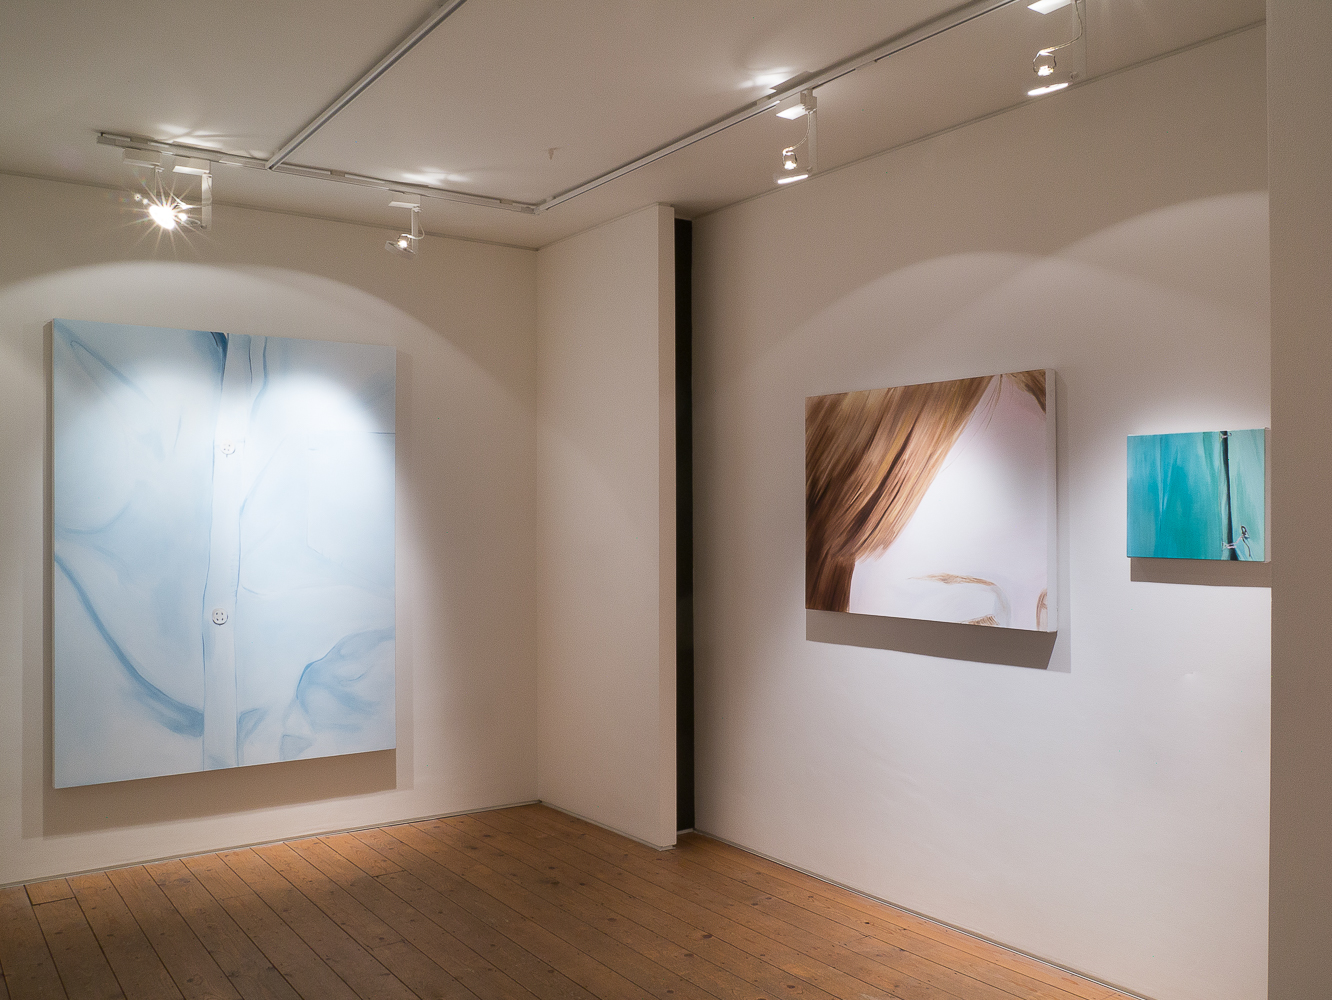 Aglaé Bassens Front Parting Solo exhibition at CABIN gallery curated by Joe Madeirs-1.jpg